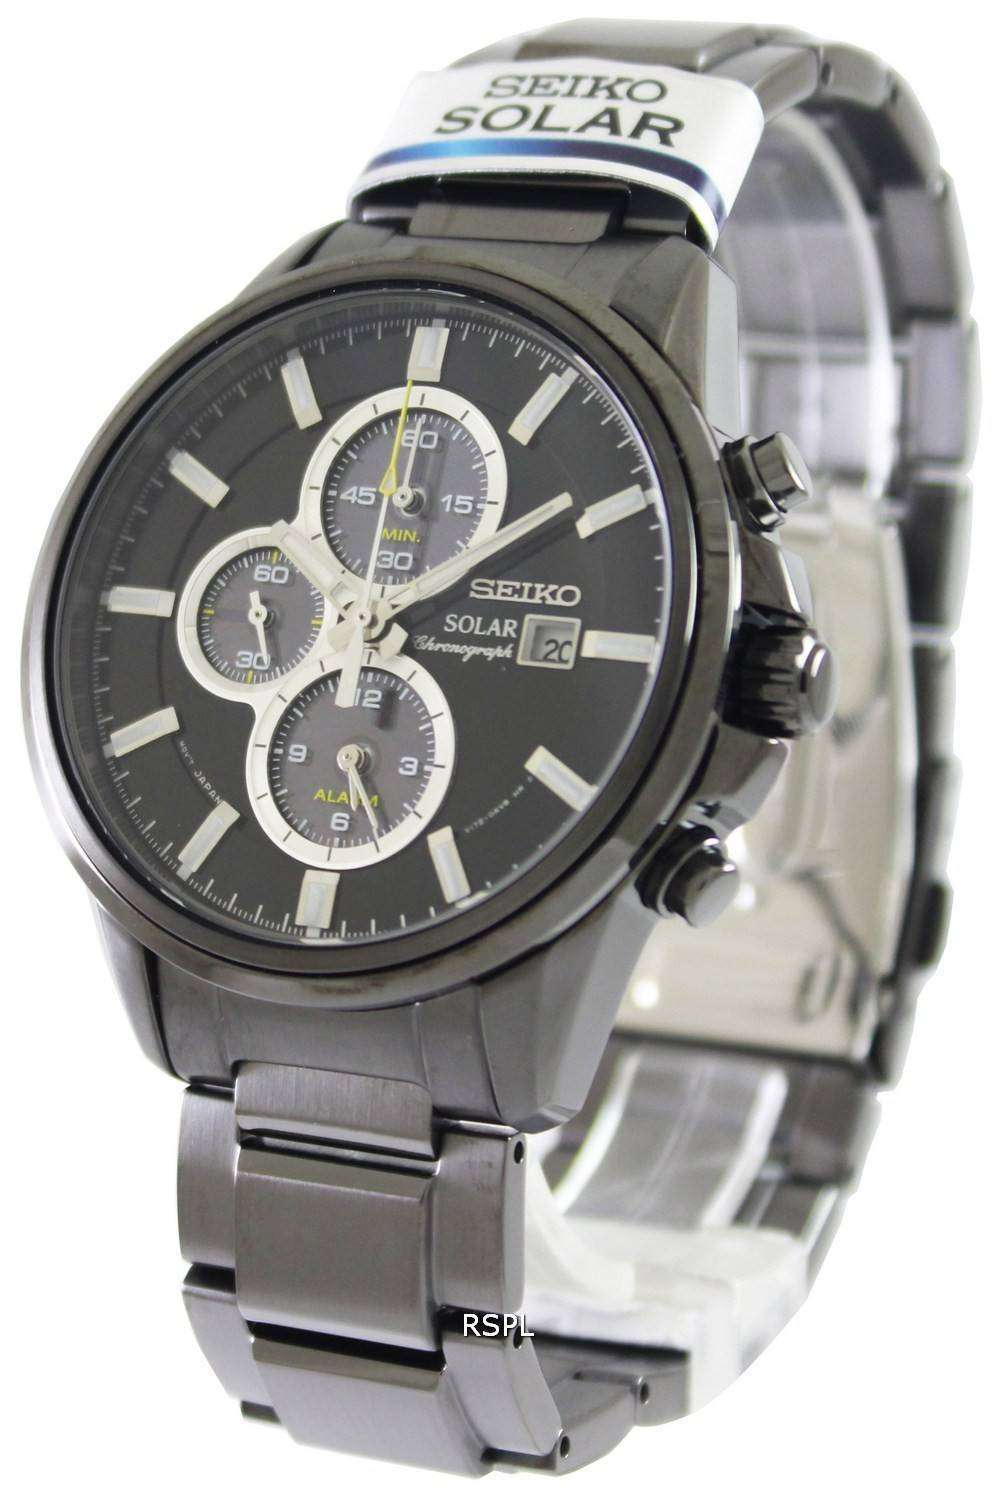 seiko solar chronograph ssc257p1 ssc257p mens watch. Black Bedroom Furniture Sets. Home Design Ideas